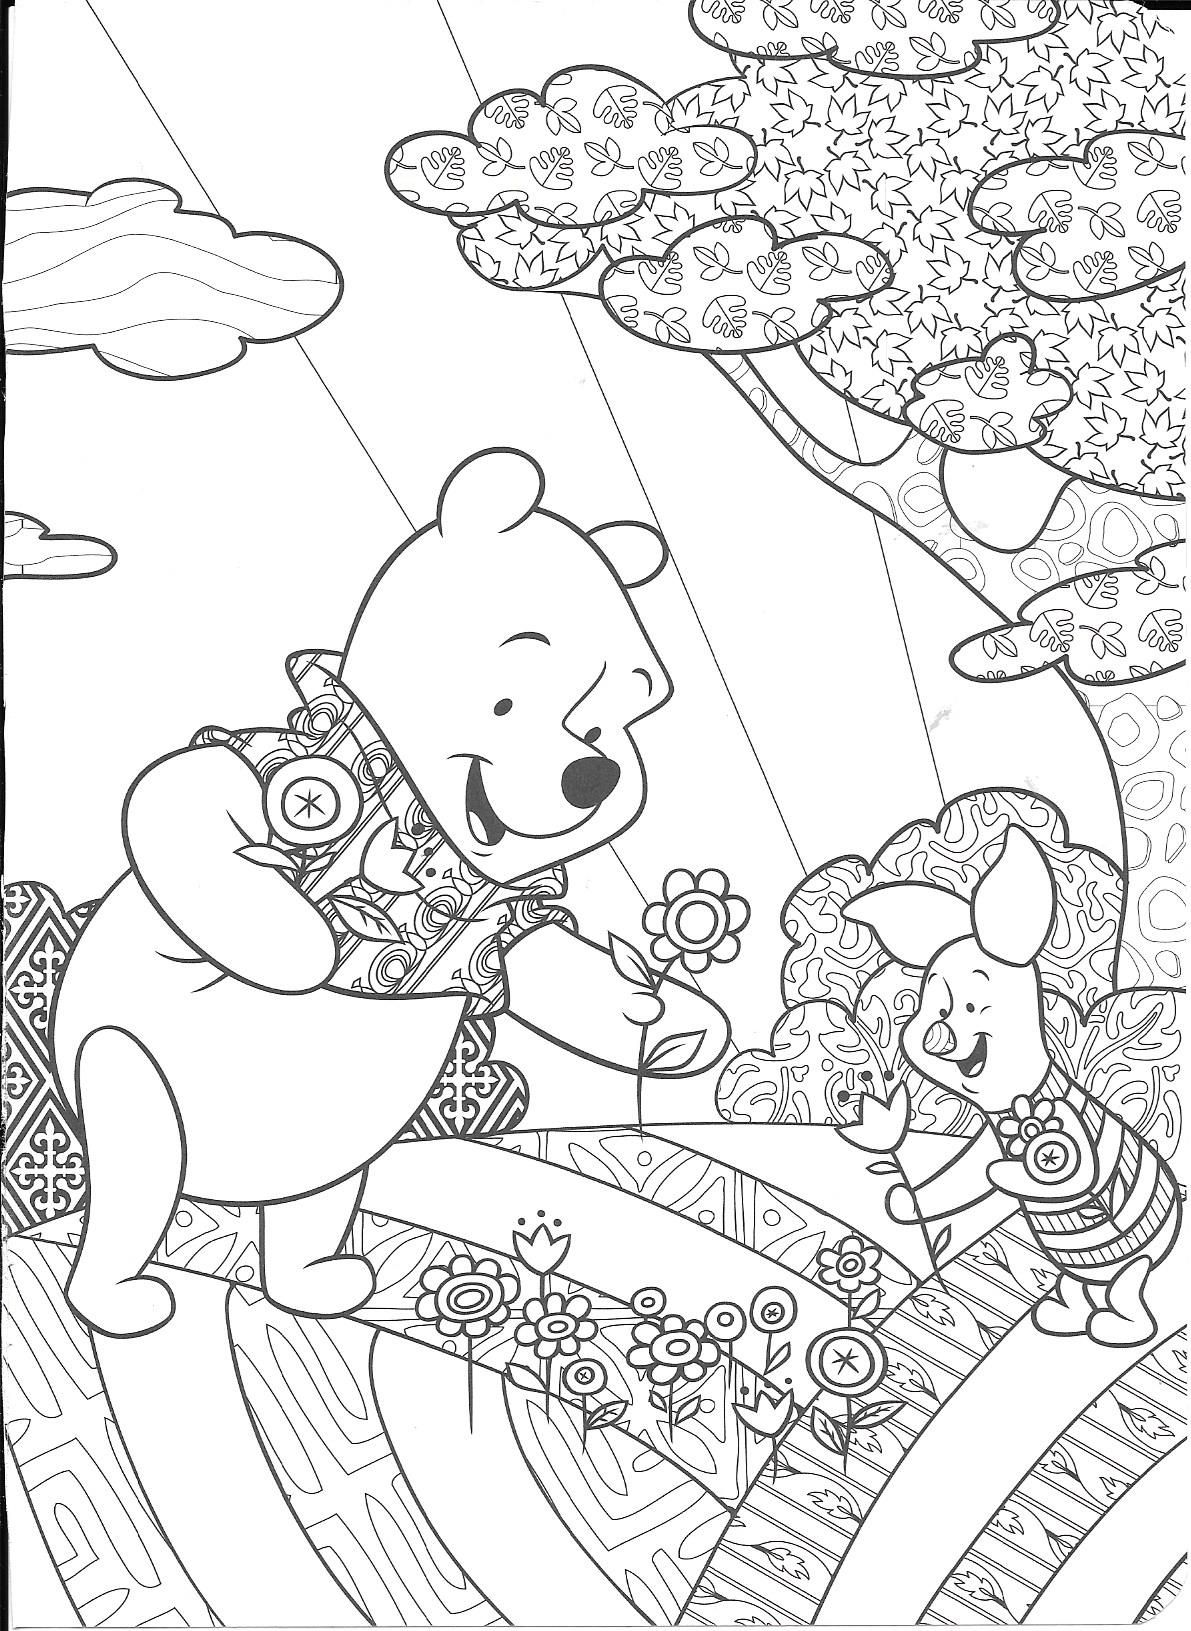 Pin By Noella Barbier Norigeon On Coloring Bee Coloring Pages Disney Coloring Sheets Disney Coloring Pages [ 1631 x 1191 Pixel ]